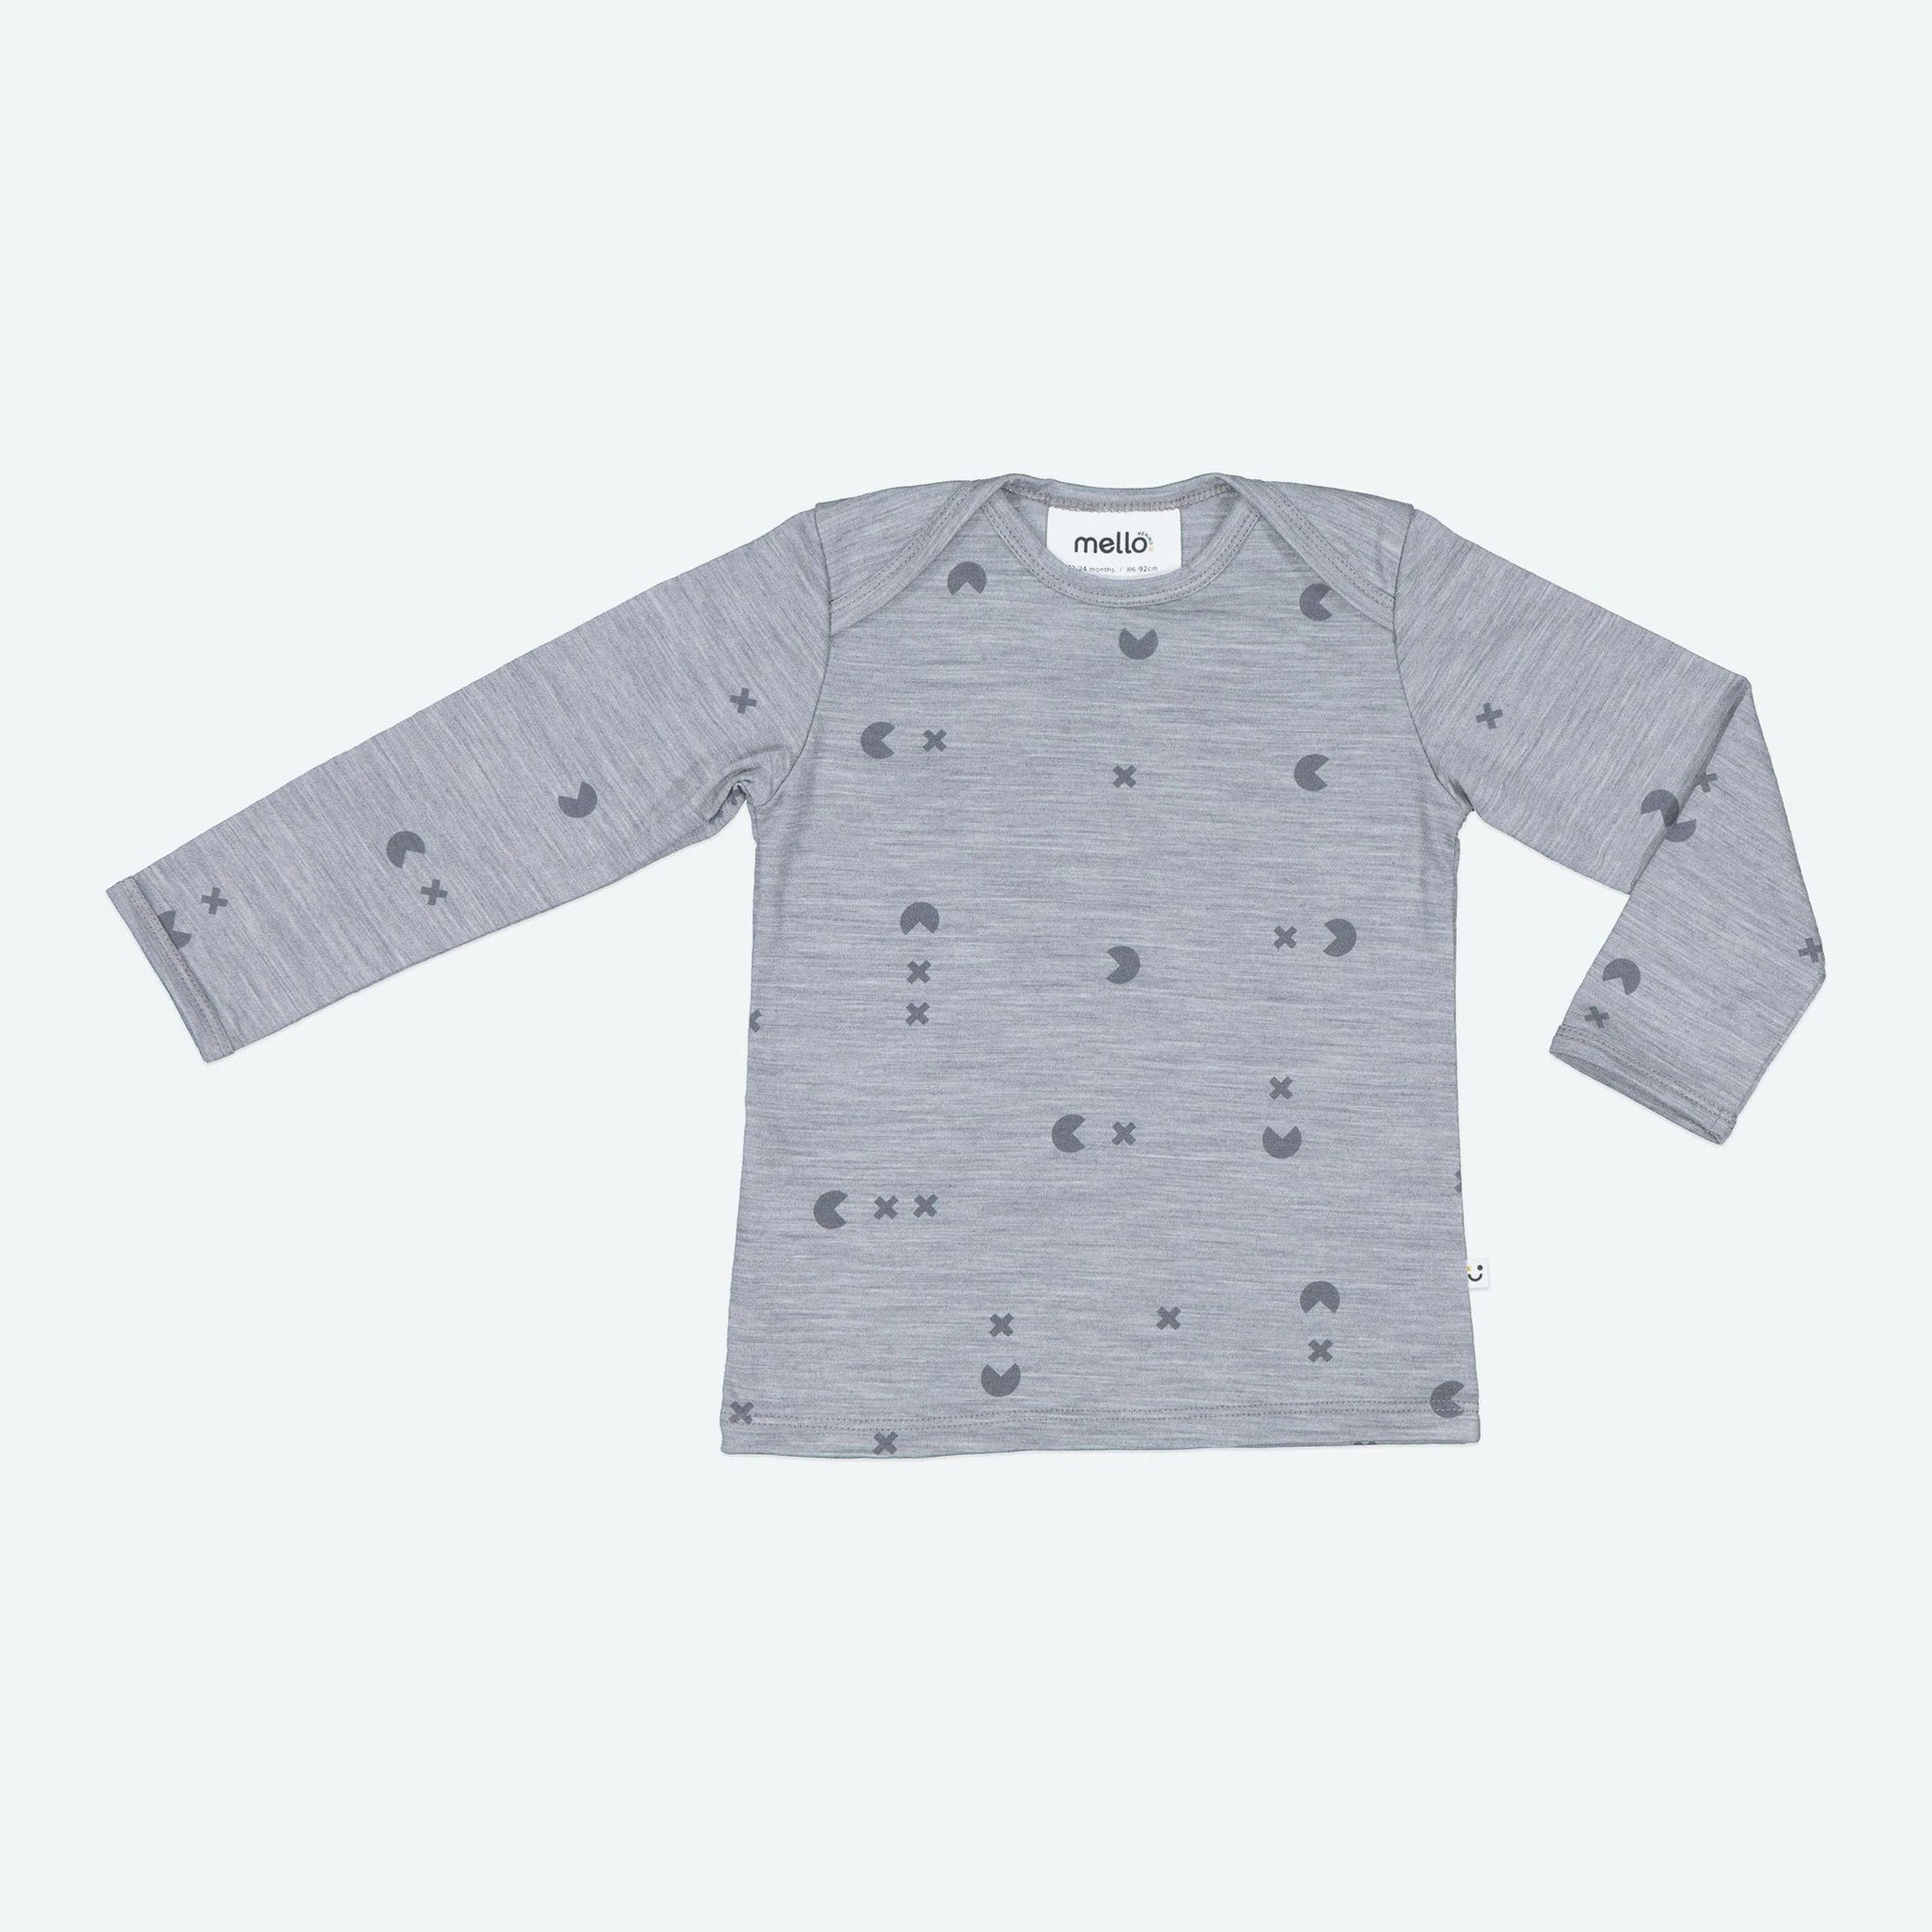 Mello Merino Grey Tee